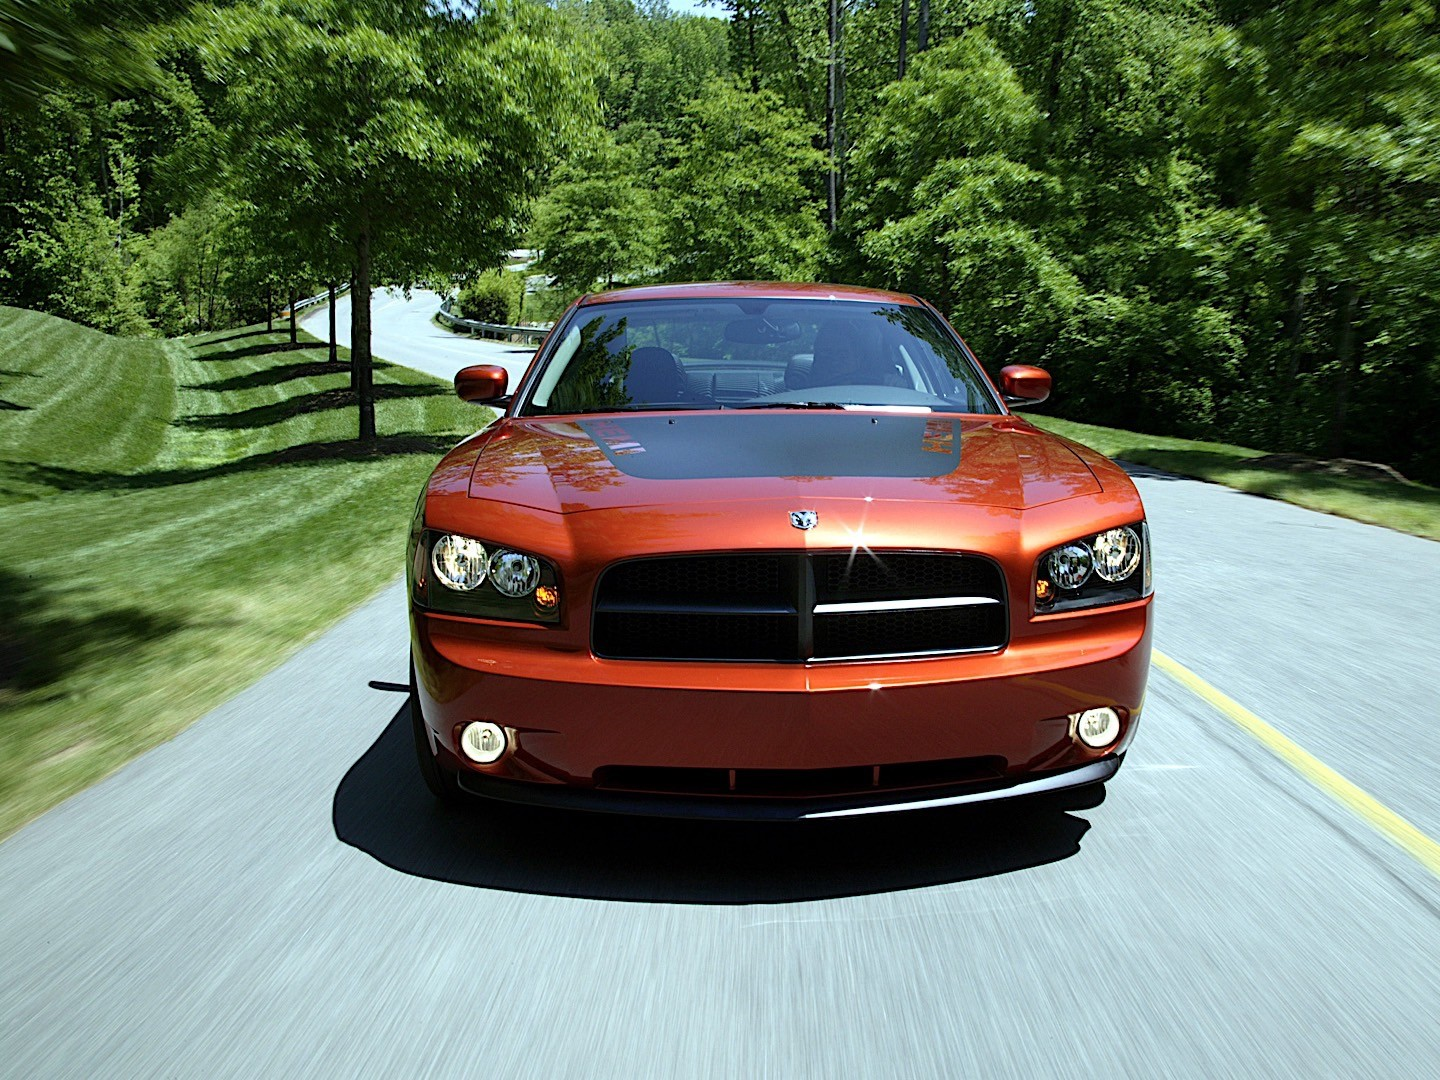 dodge charger specs - 2005, 2006, 2007, 2008, 2009, 2010